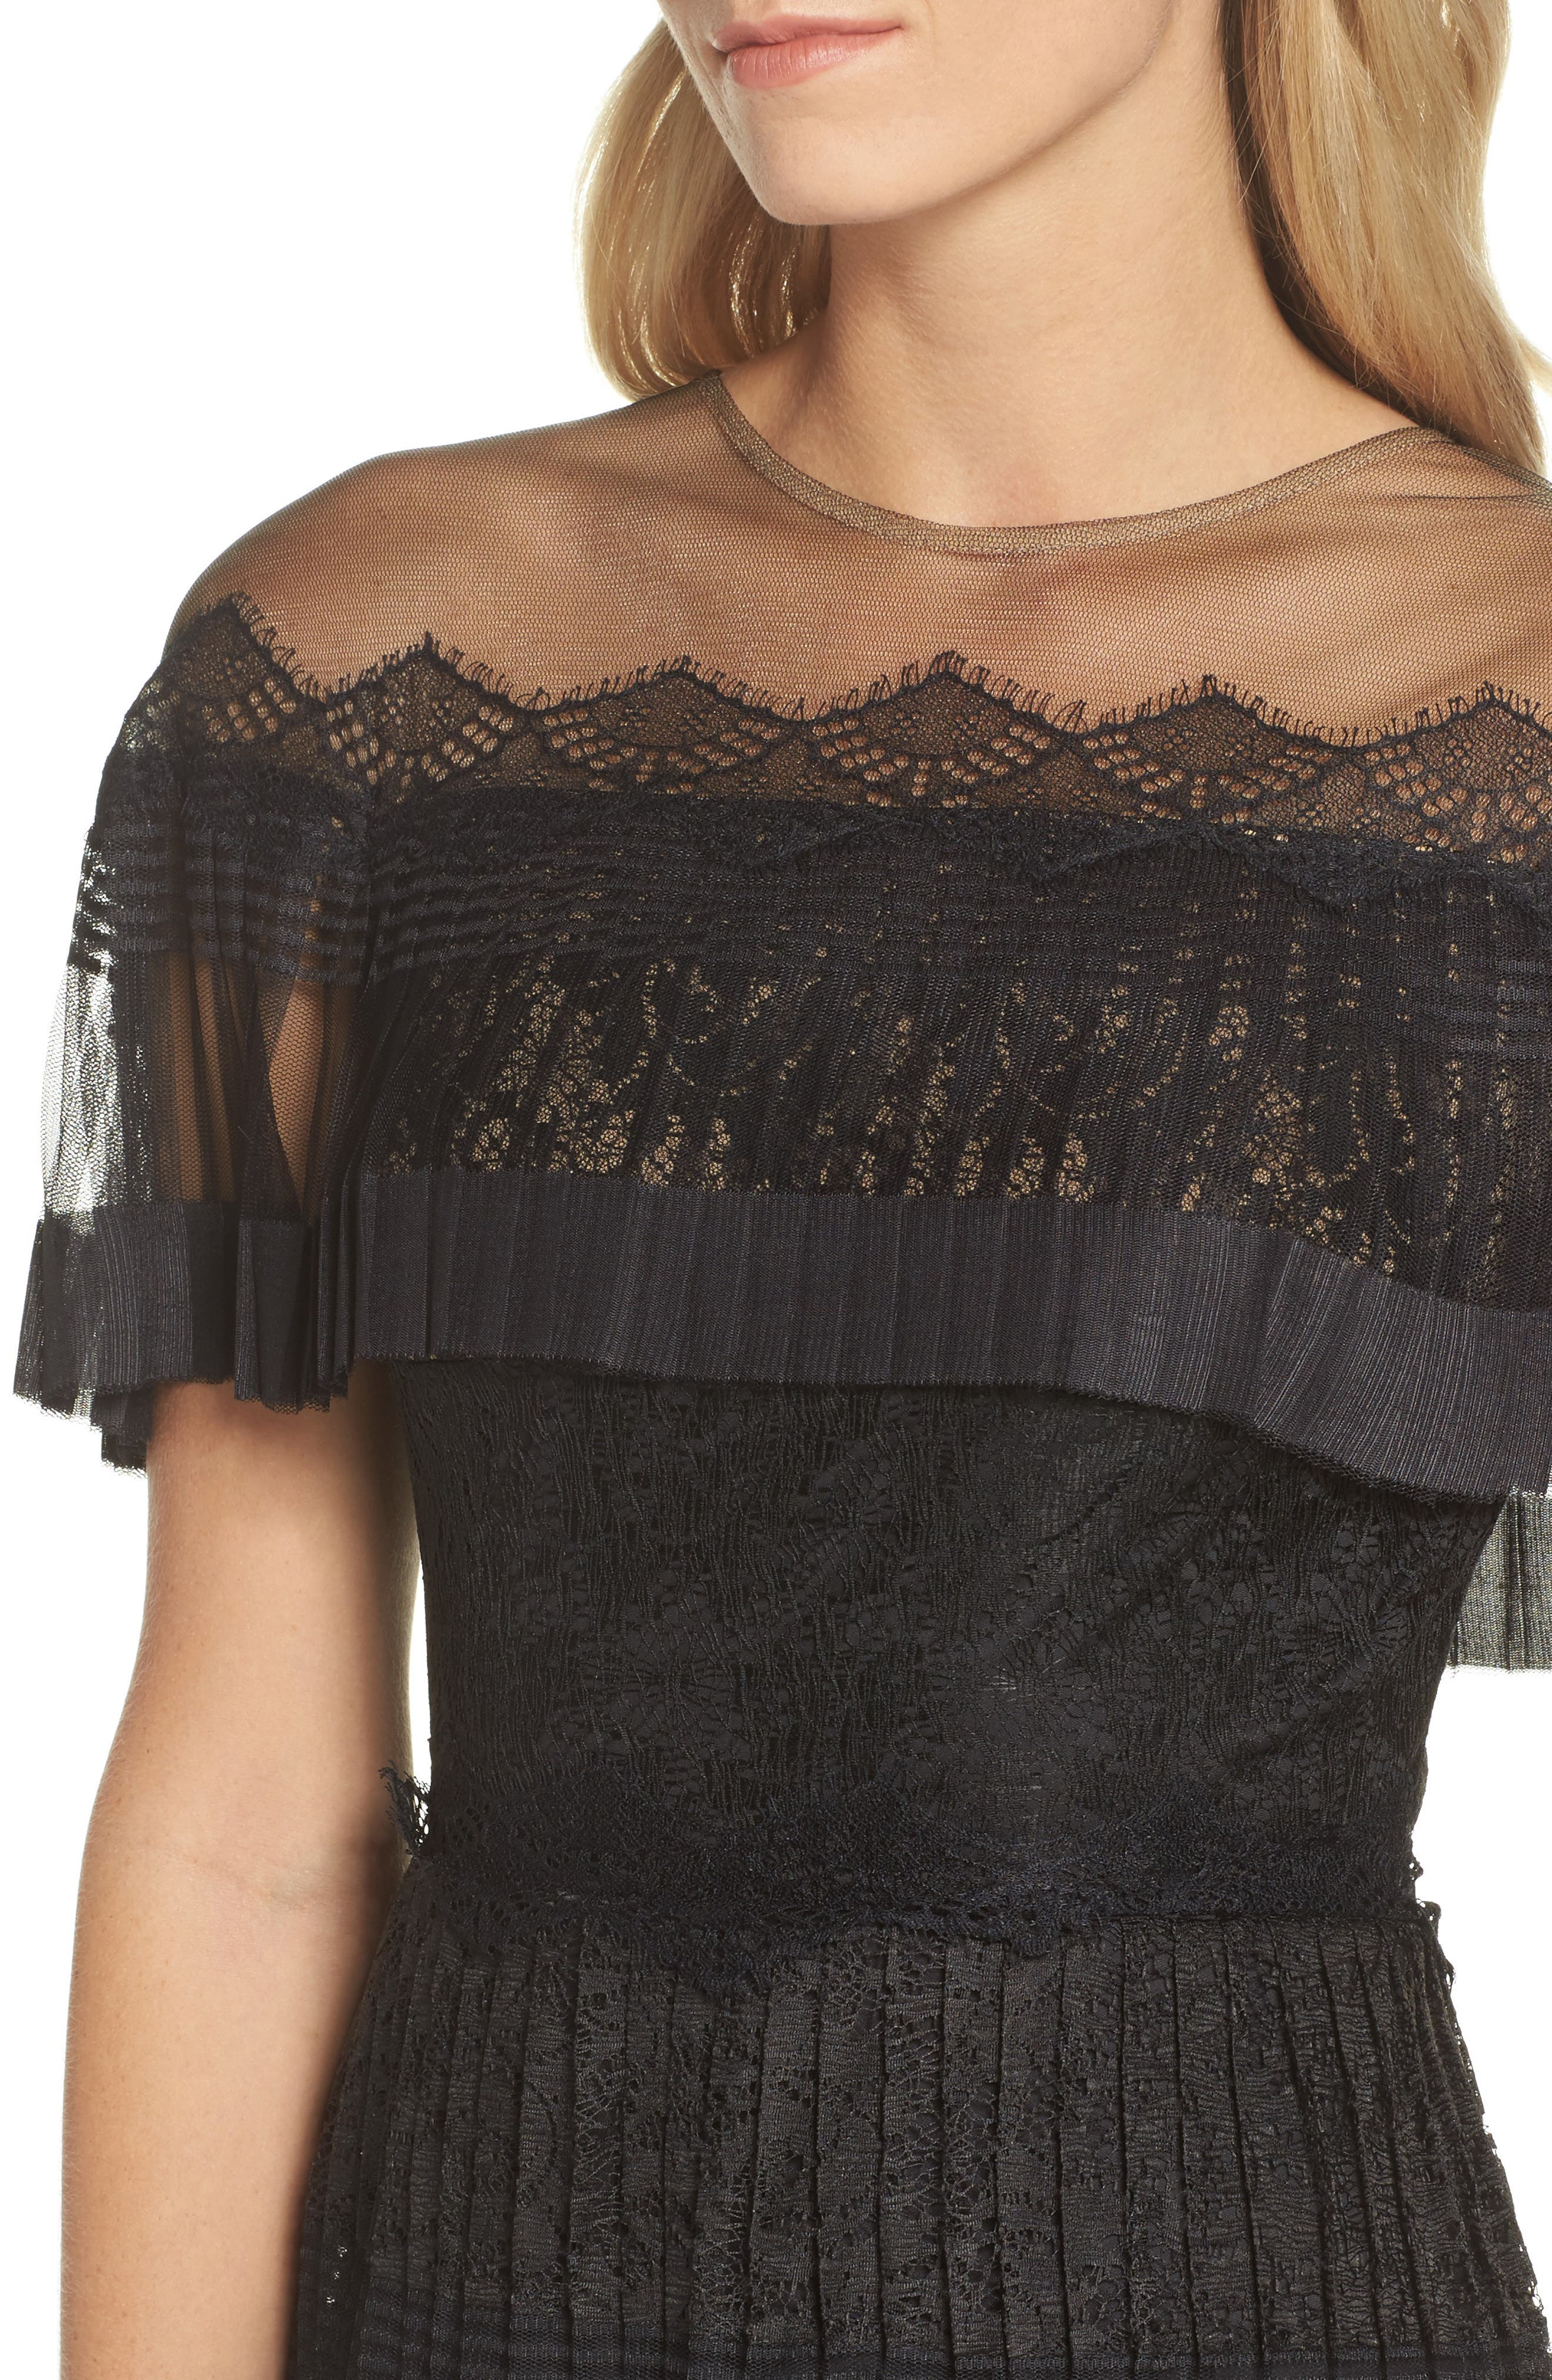 Pleated Lace Dress,                             Alternate thumbnail 4, color,                             Black/ Nude